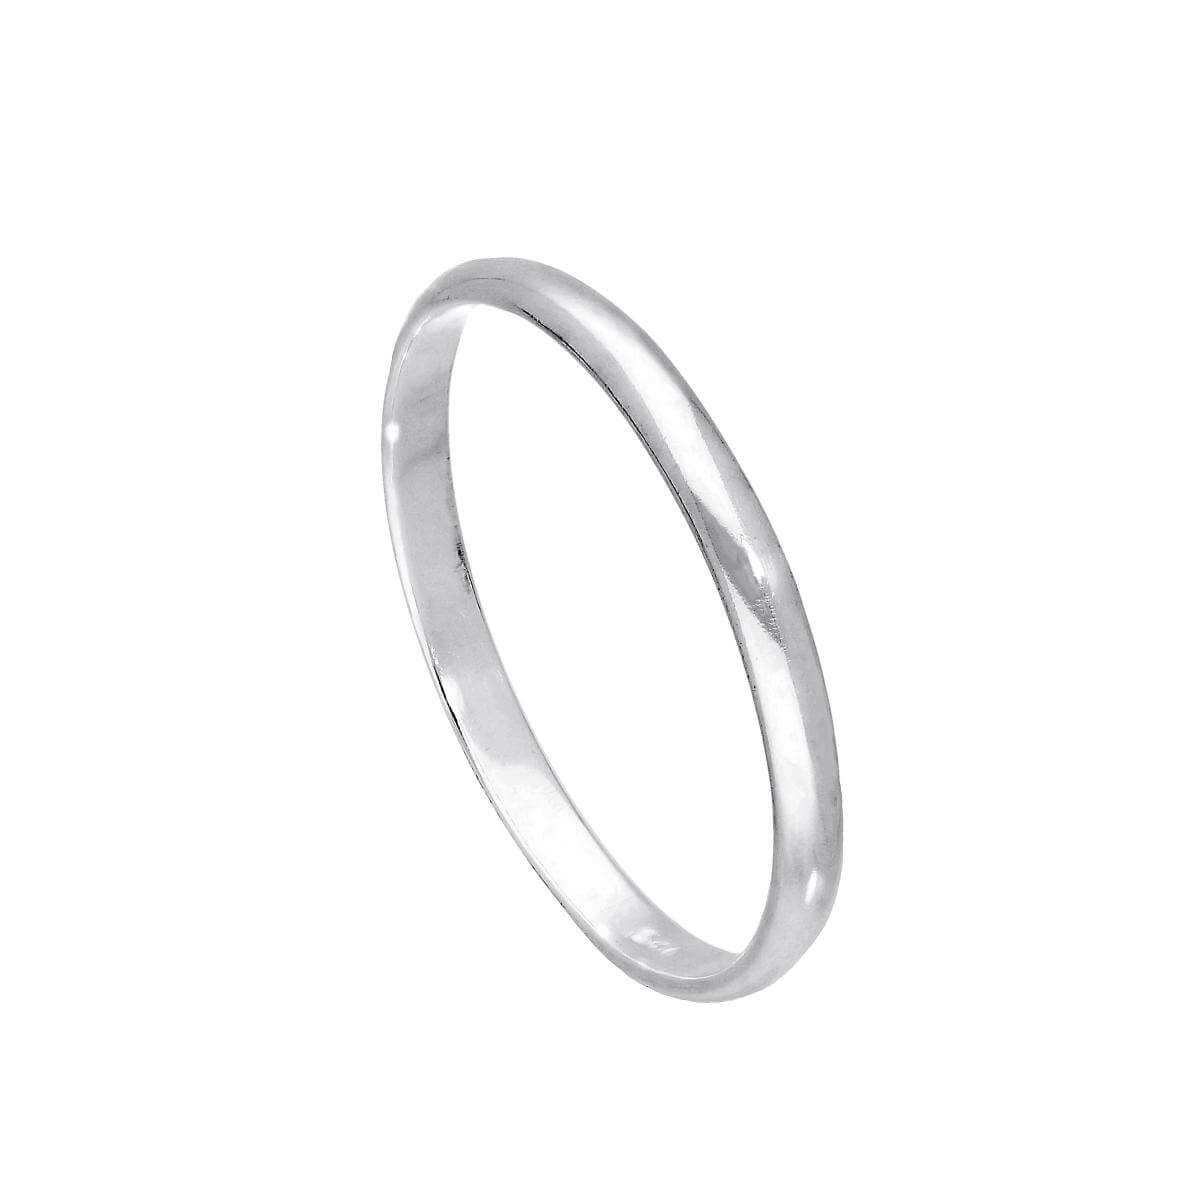 It is a graphic of Sterling Silver 32mm D Shaped Wedding Band Ring Size E - W